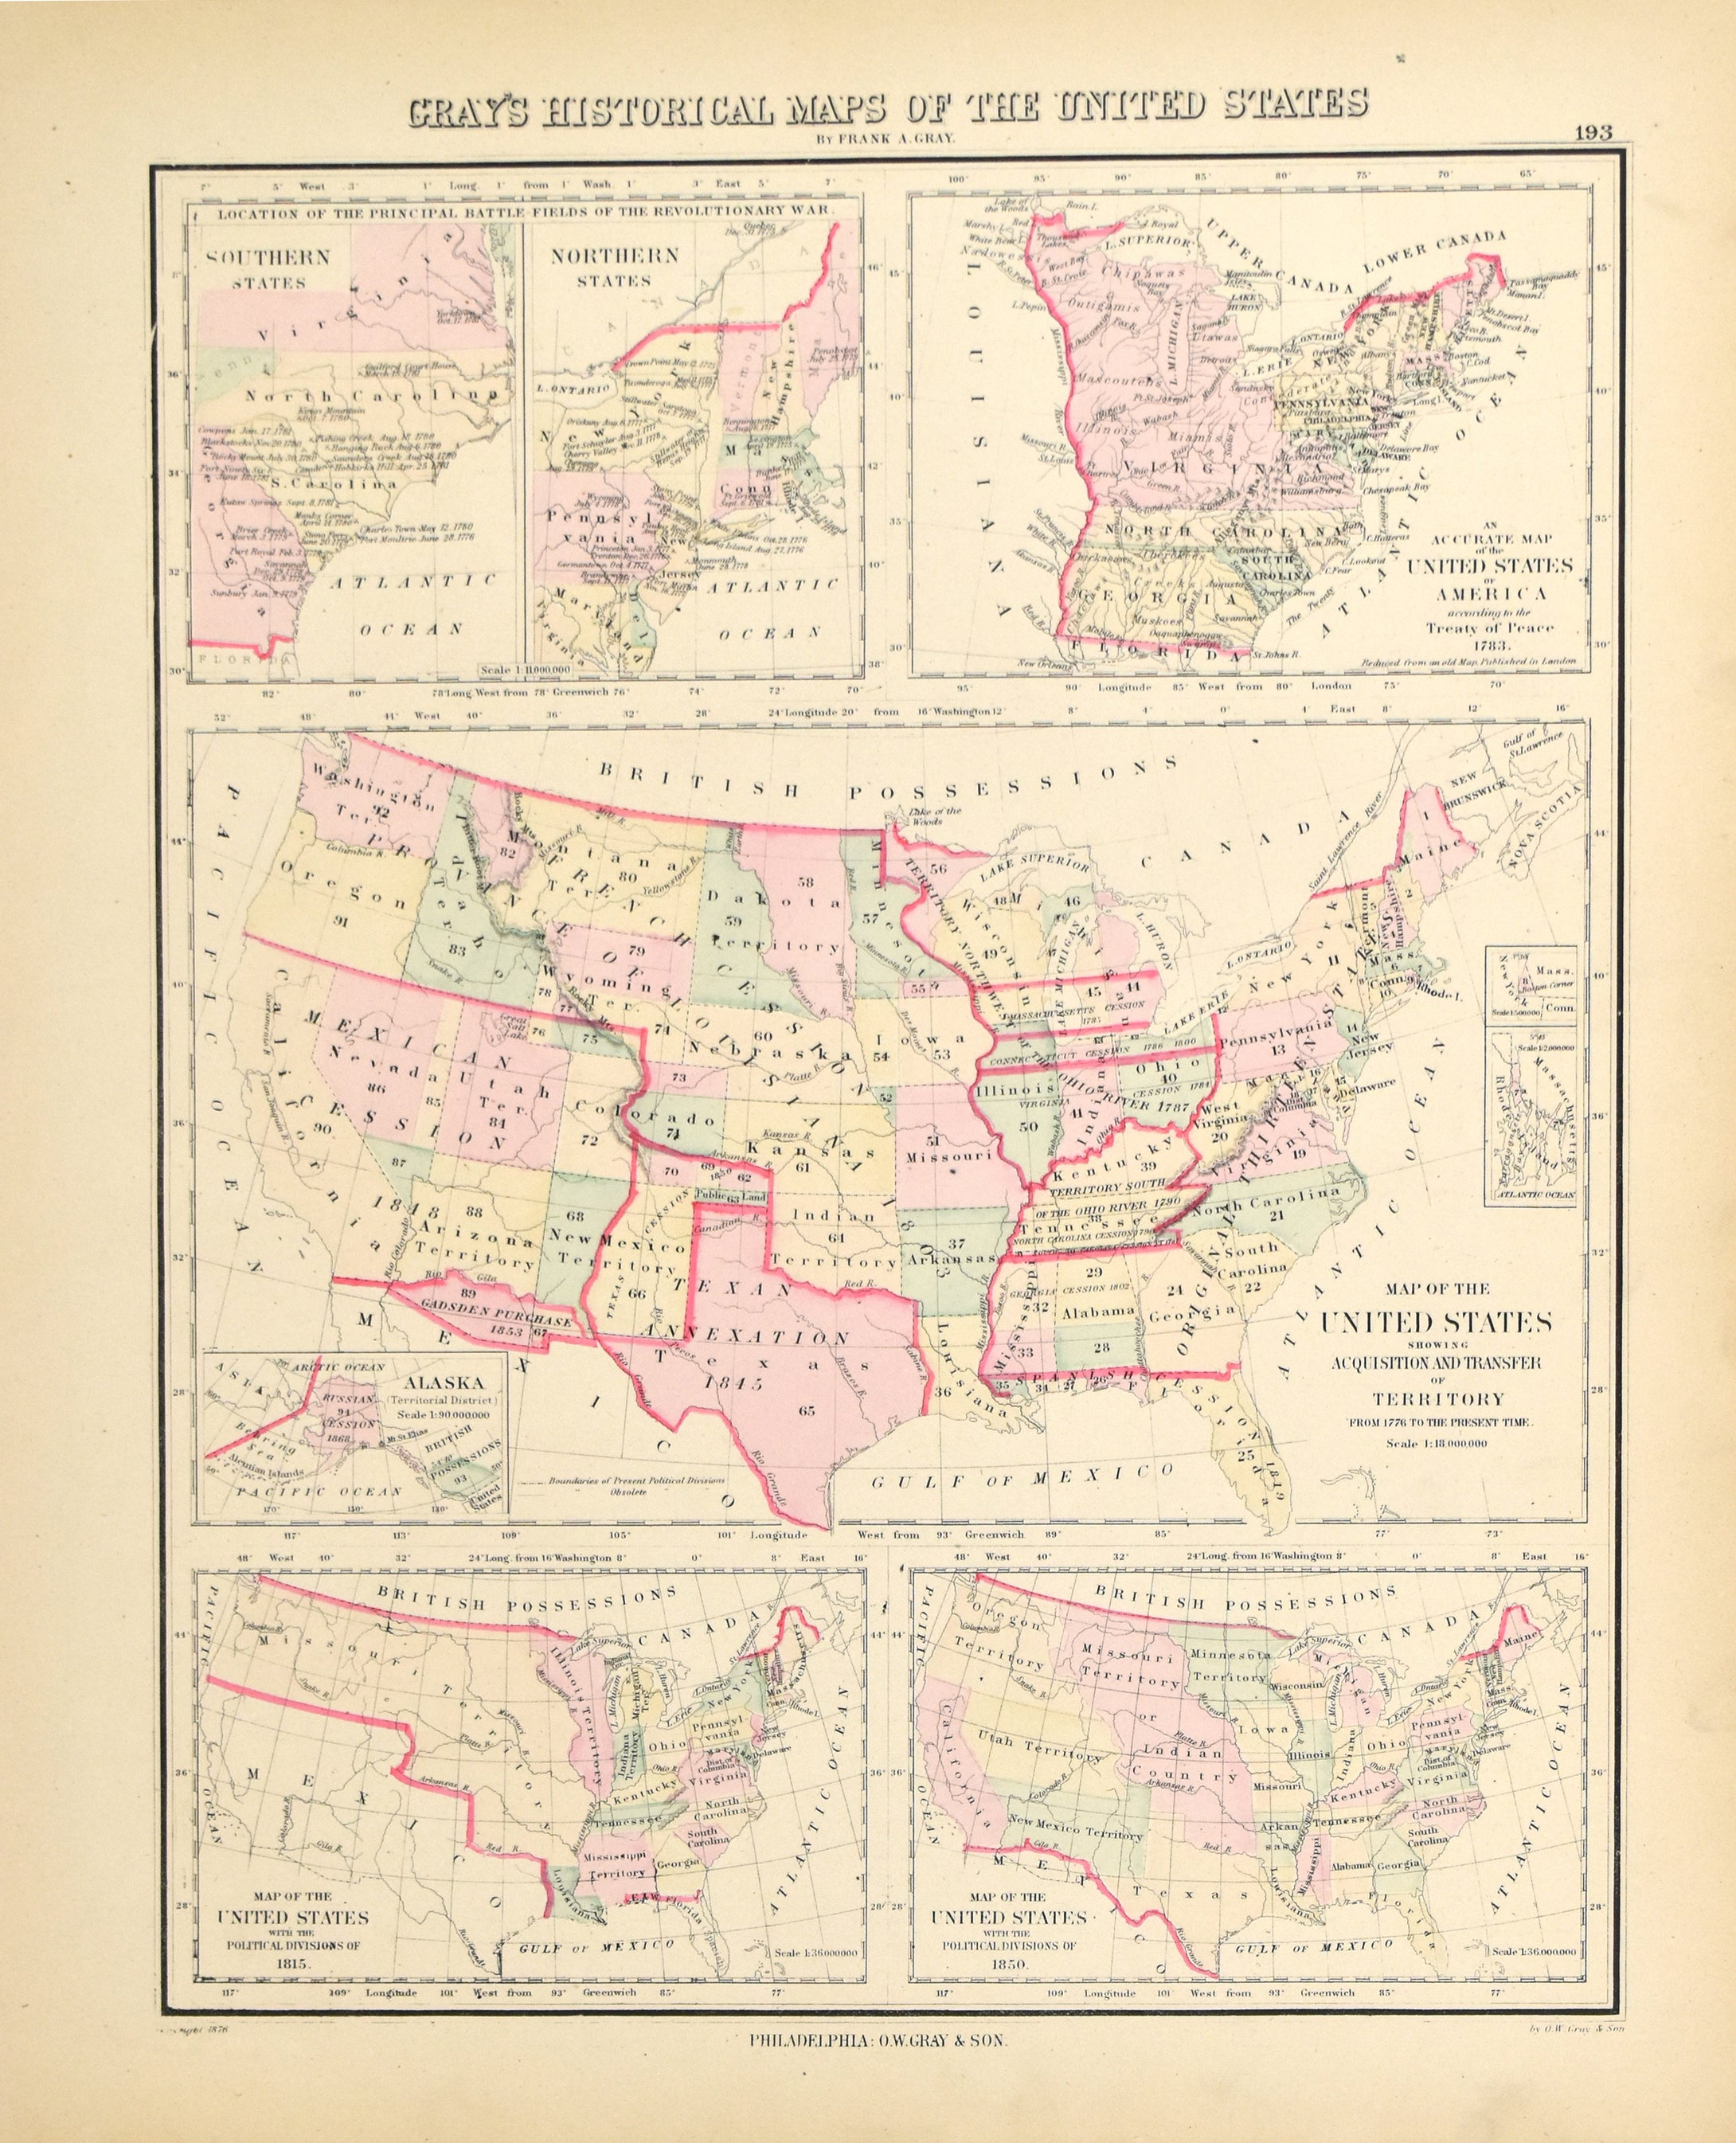 Gray's Historical Maps of the United States: O.W. Gray 1883